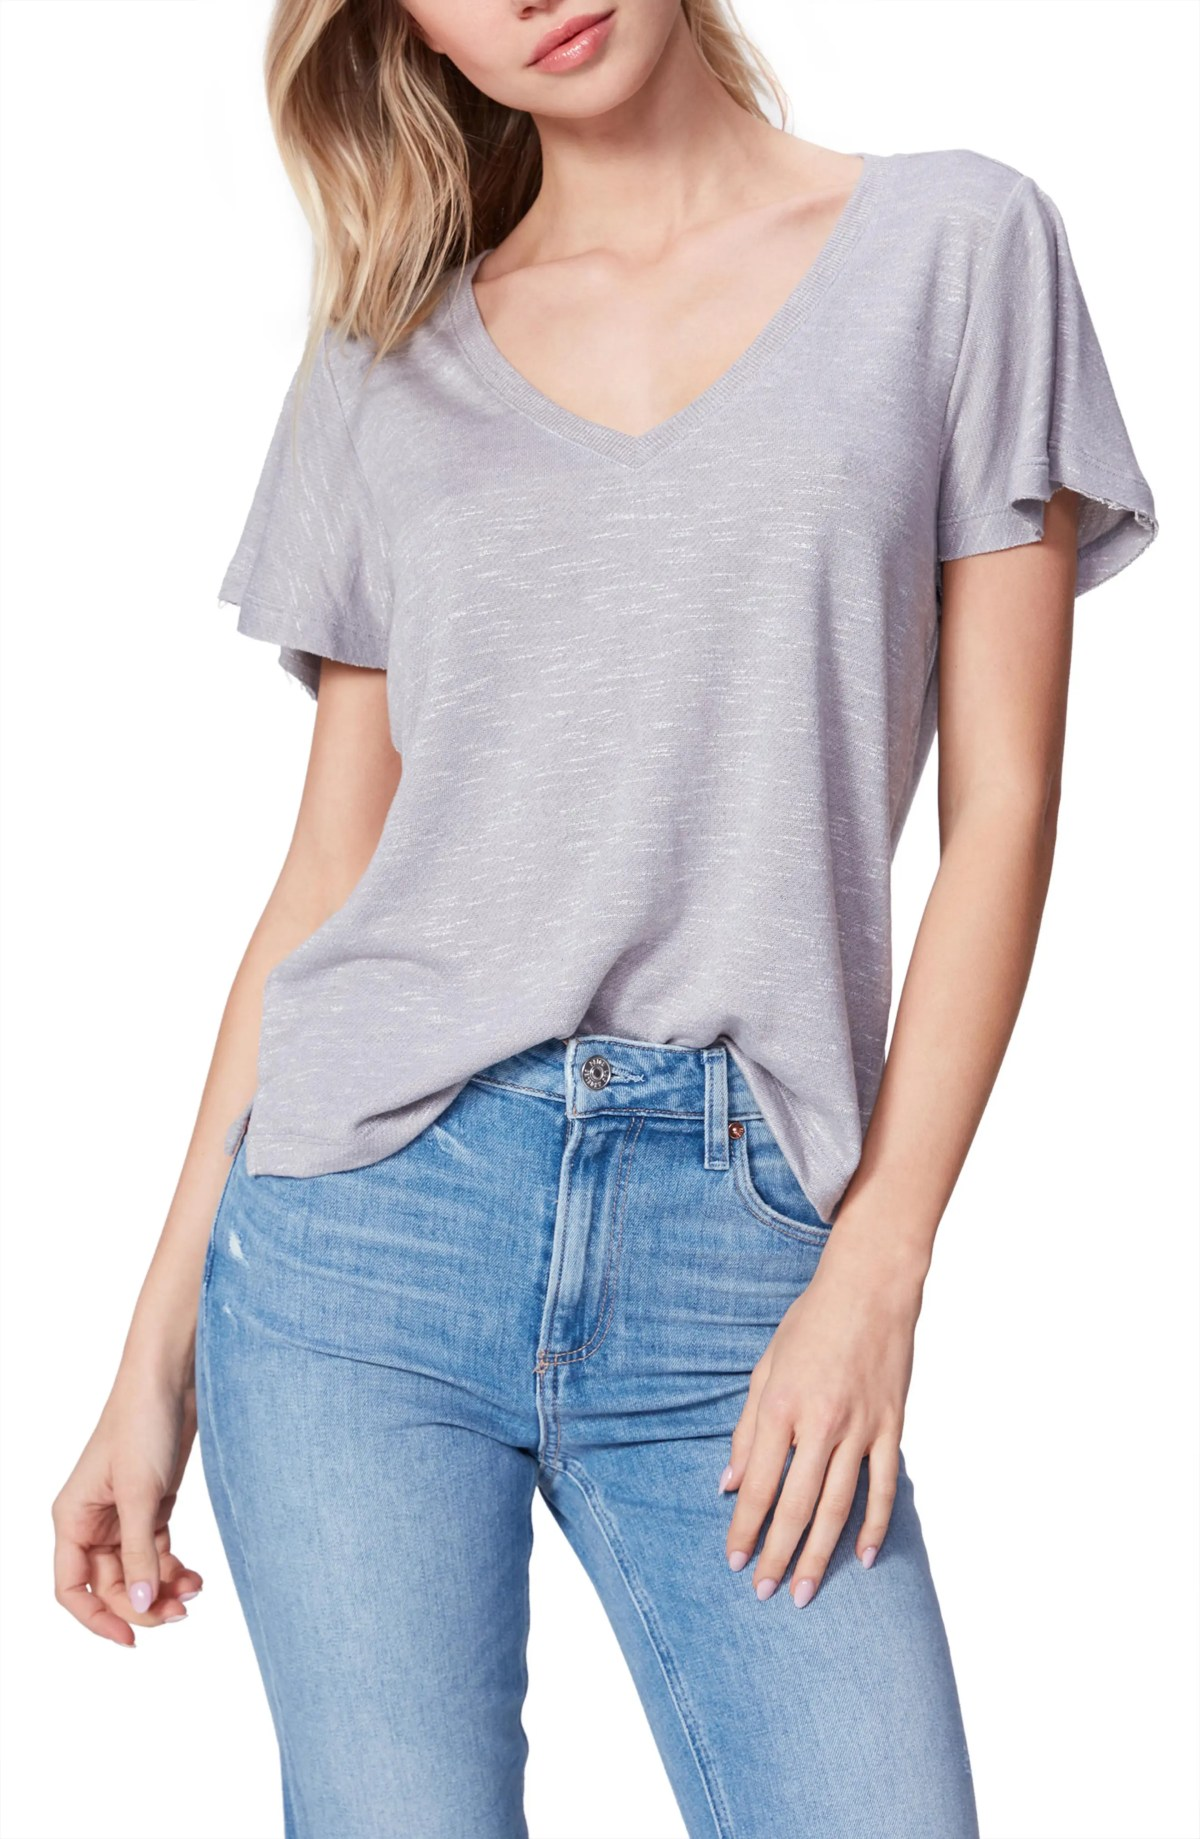 PAIGE Rochel Ruffle Sleeve T-Shirt, Main, color, BRIGHT HEATHER GREY